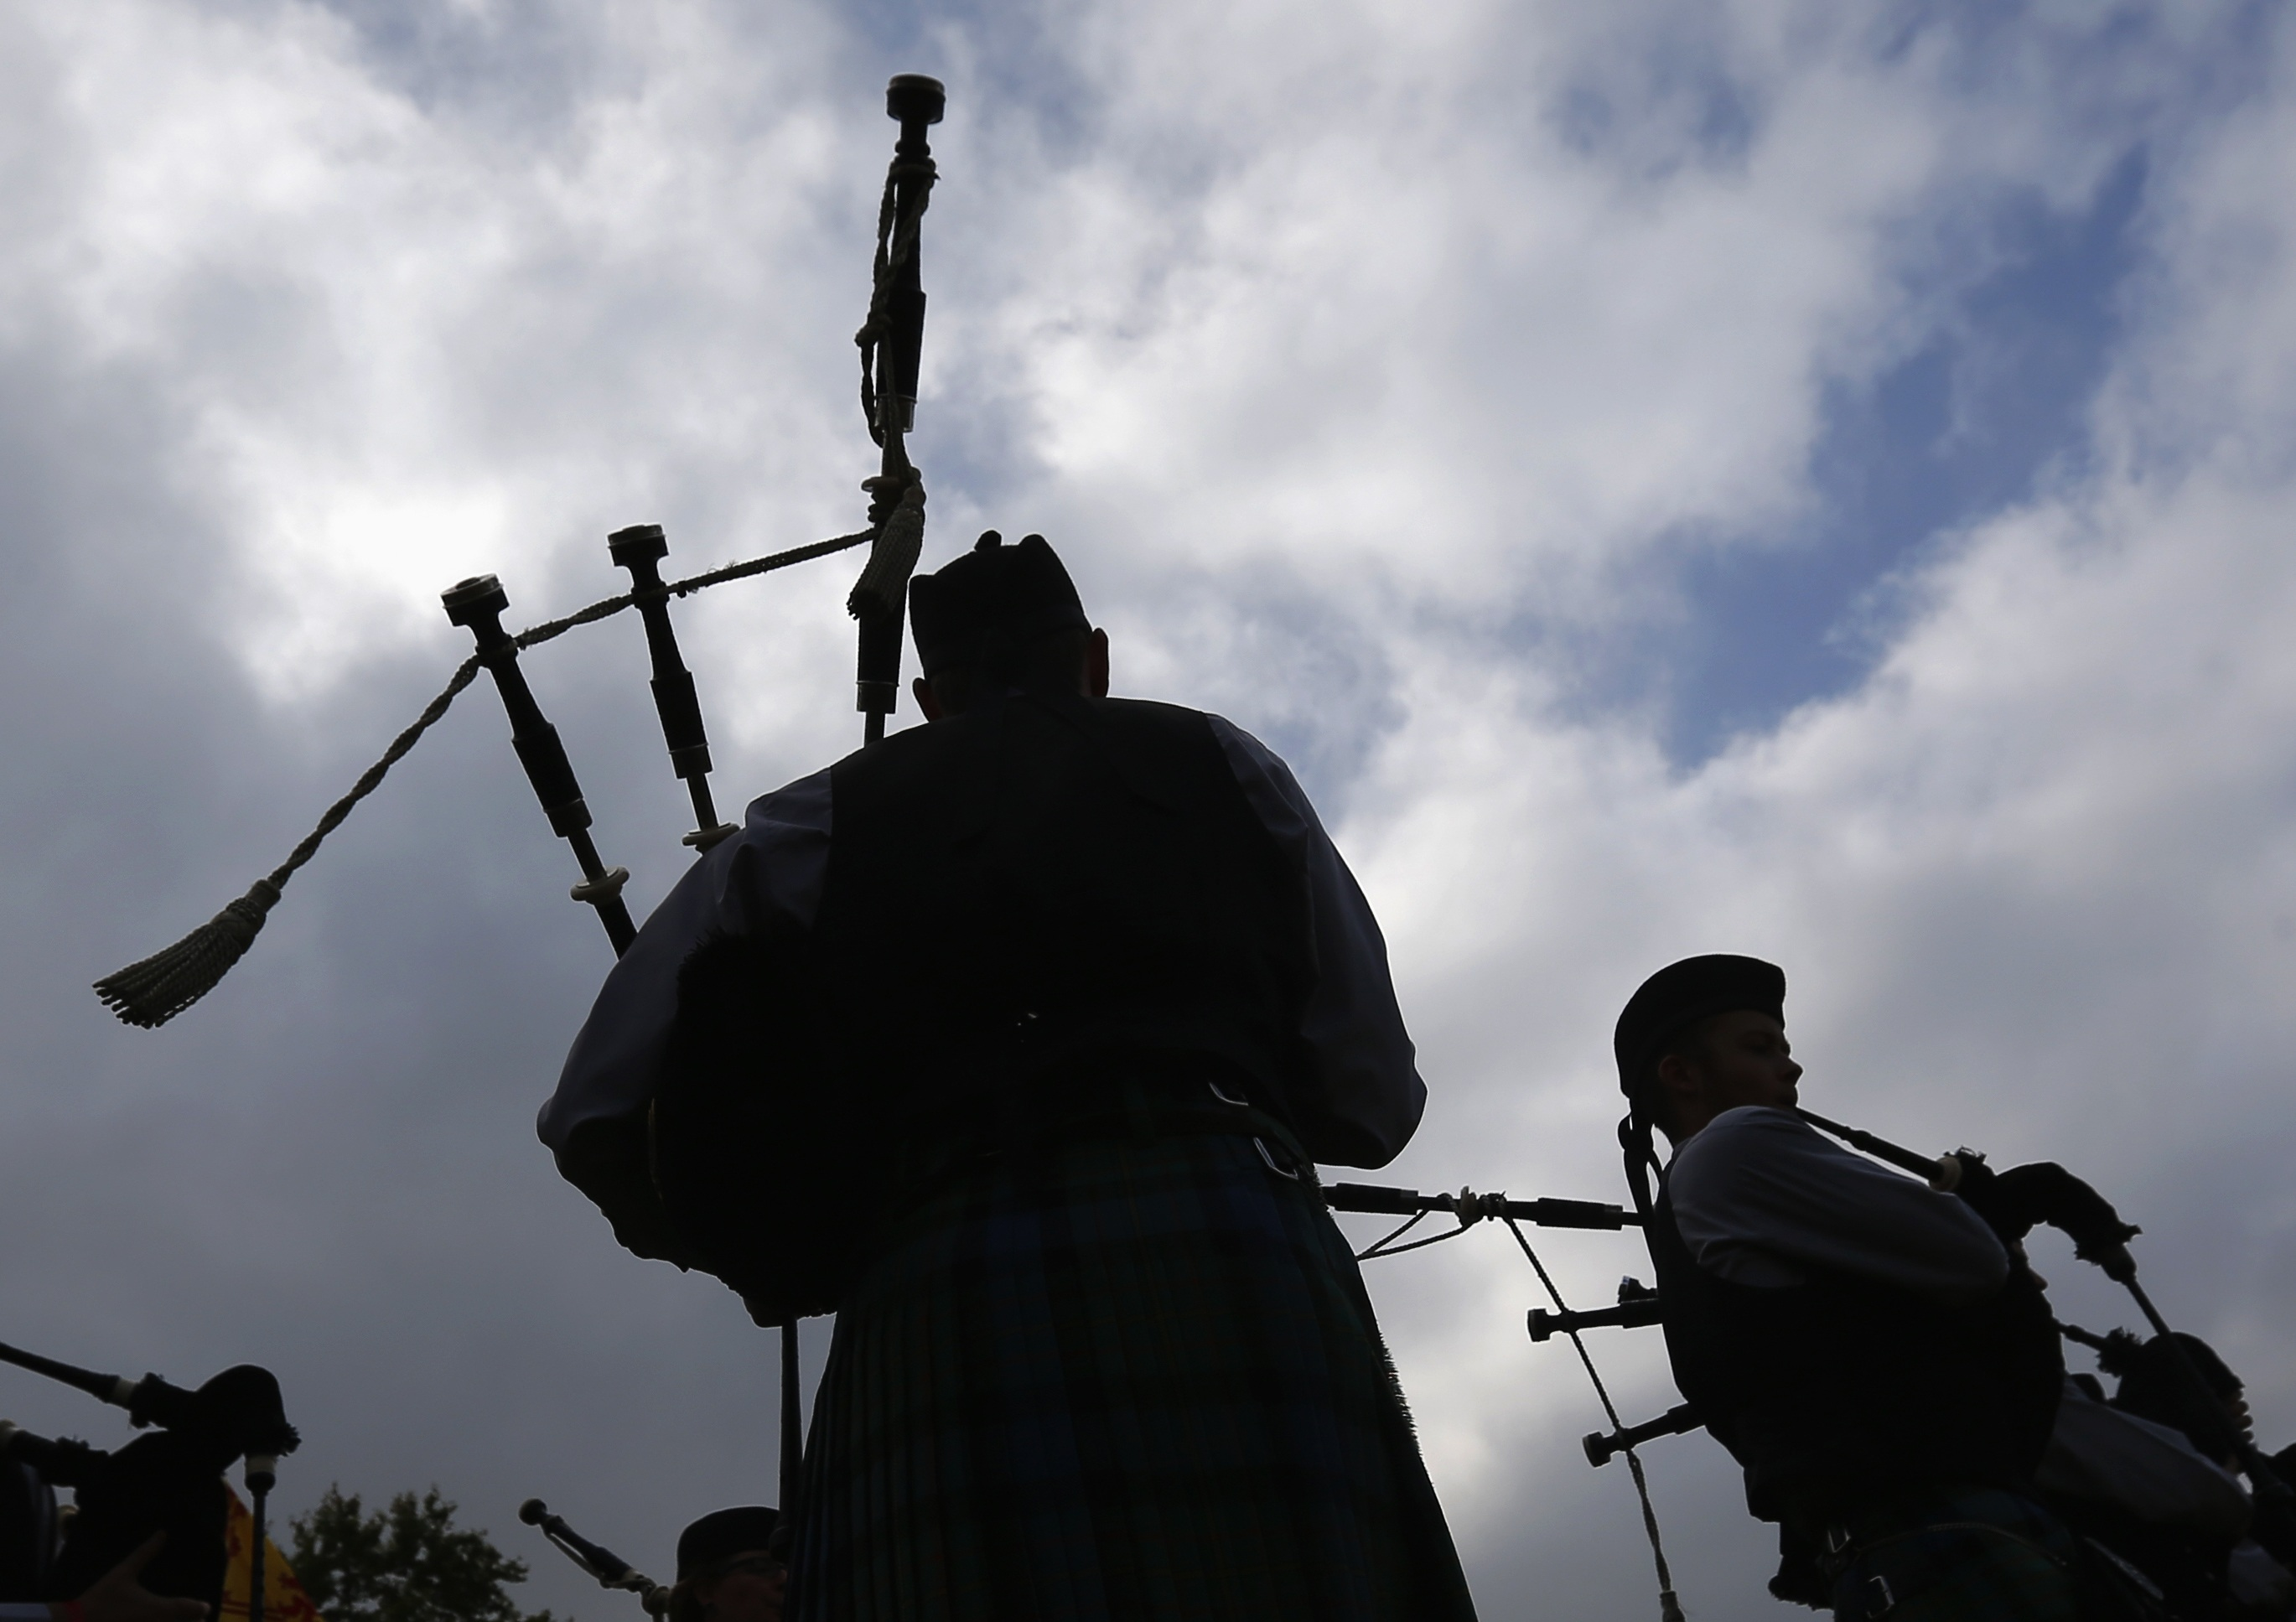 Competitors are silhouetted as they take part in the Belgian Pipe Band Championship during the Scottish Weekend event in Belgium's Flanders village of Bilzen